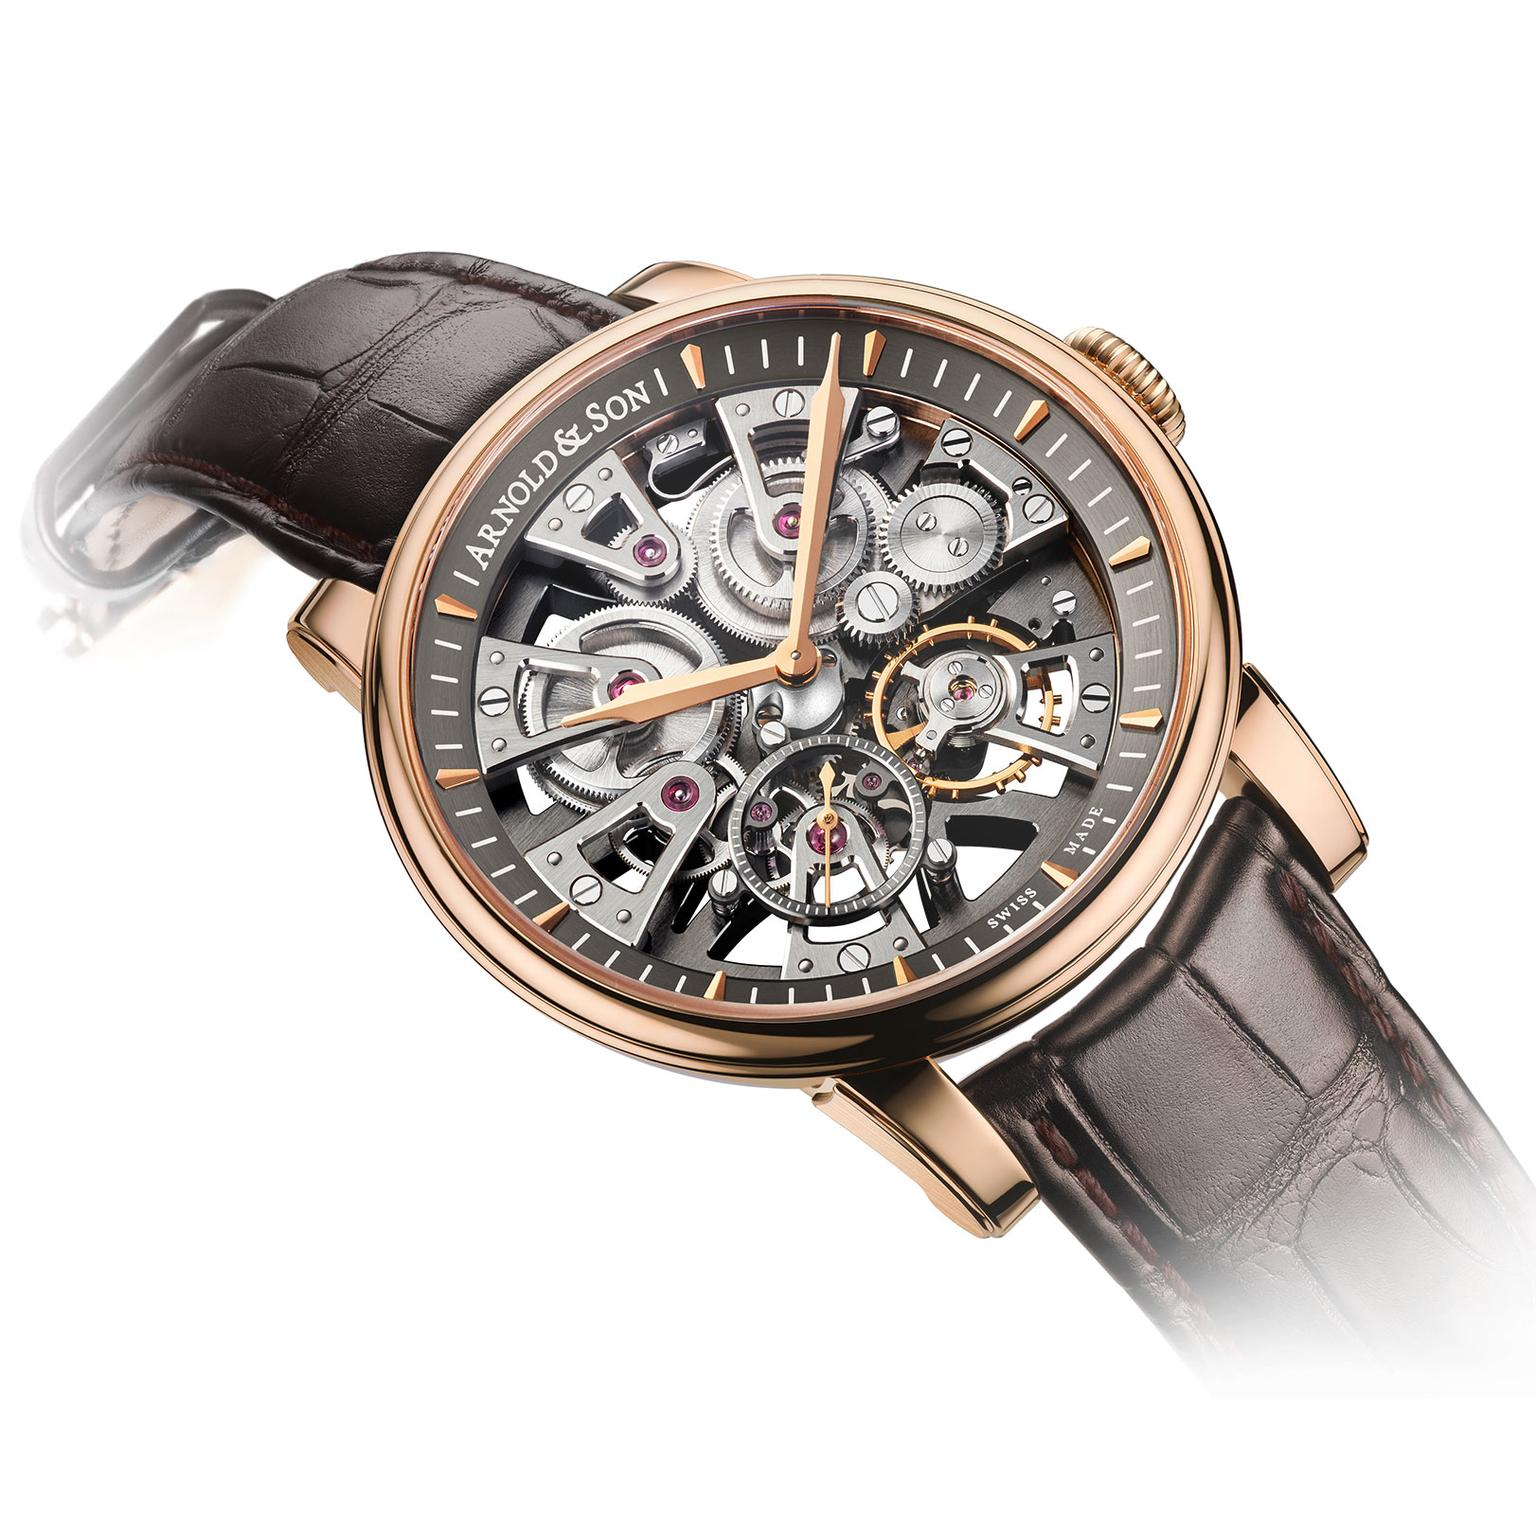 Arnold & Son Nebula red gold watch